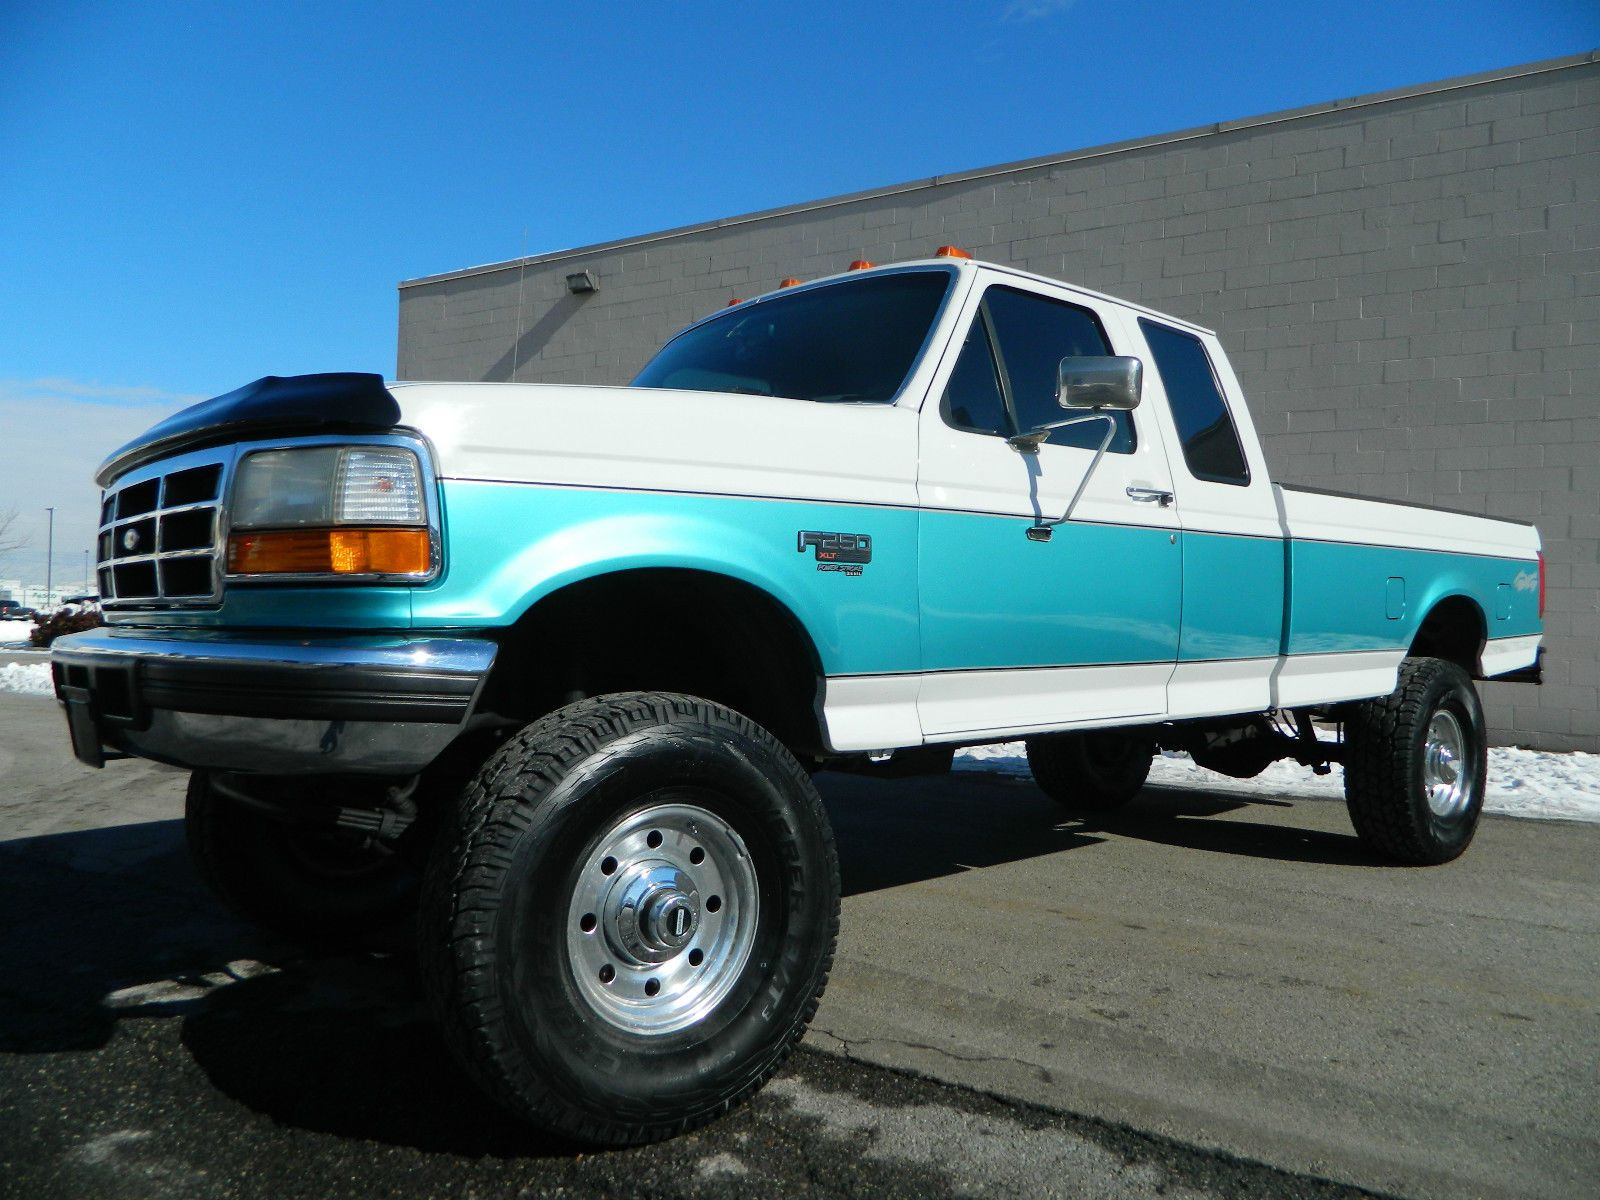 Lifted 1995 Ford F250 Supercab Longbed XLT 4X4 5 Speed Manual 7.3  Powerstroke DIESEL Lifted Trucks